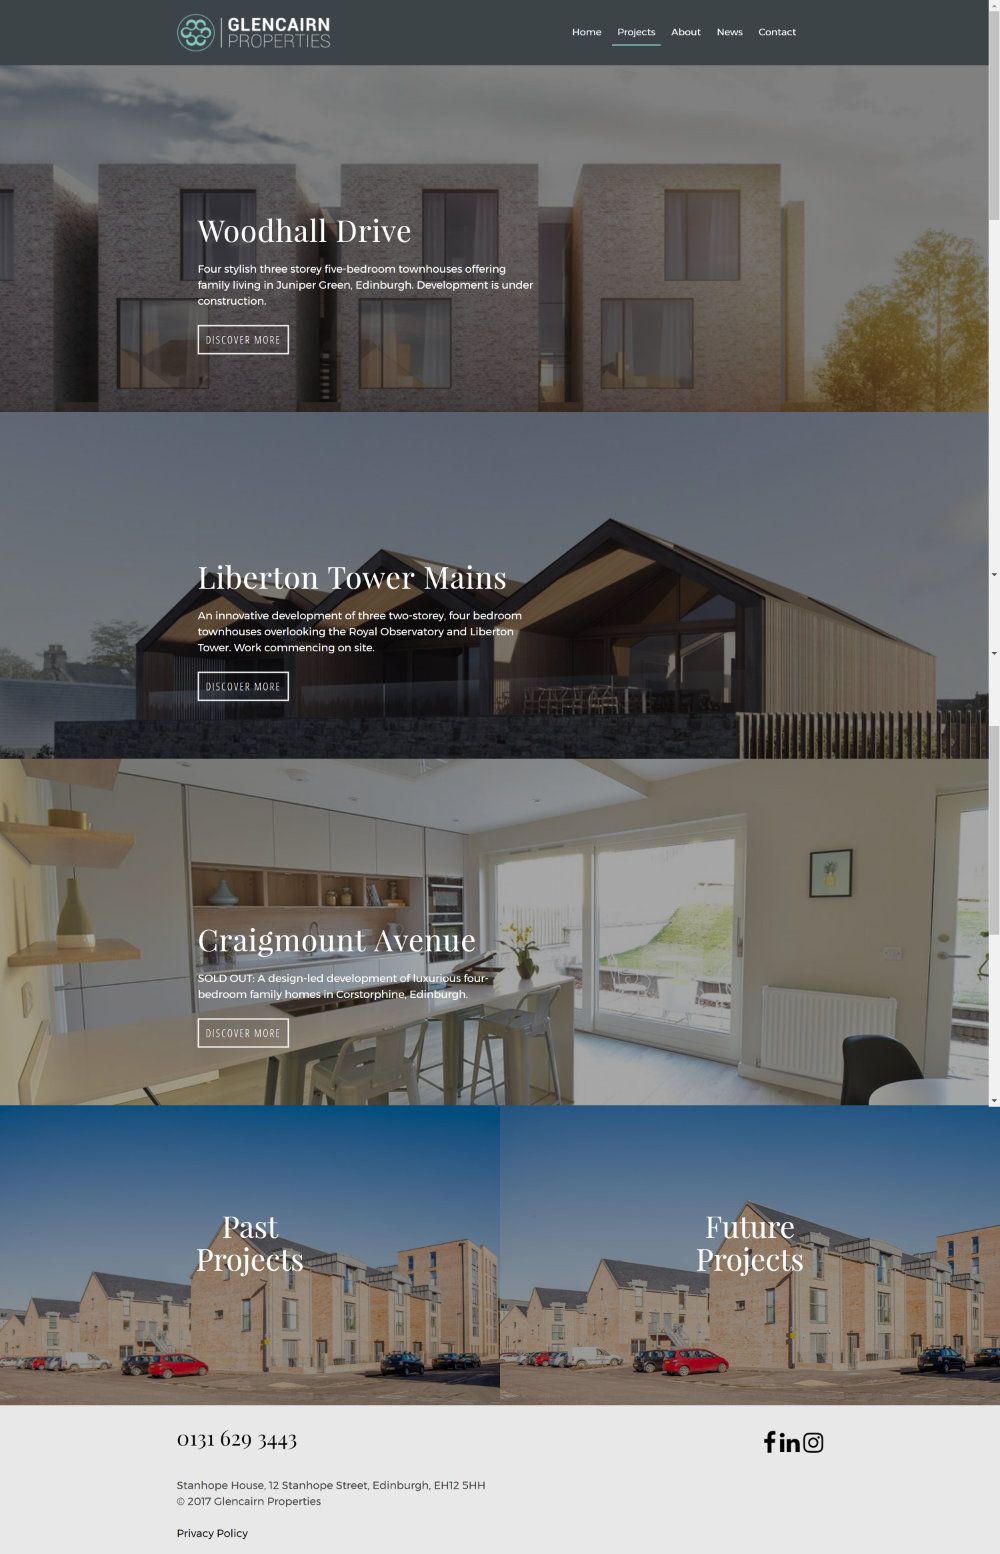 Property developers website - Glencairn Properties